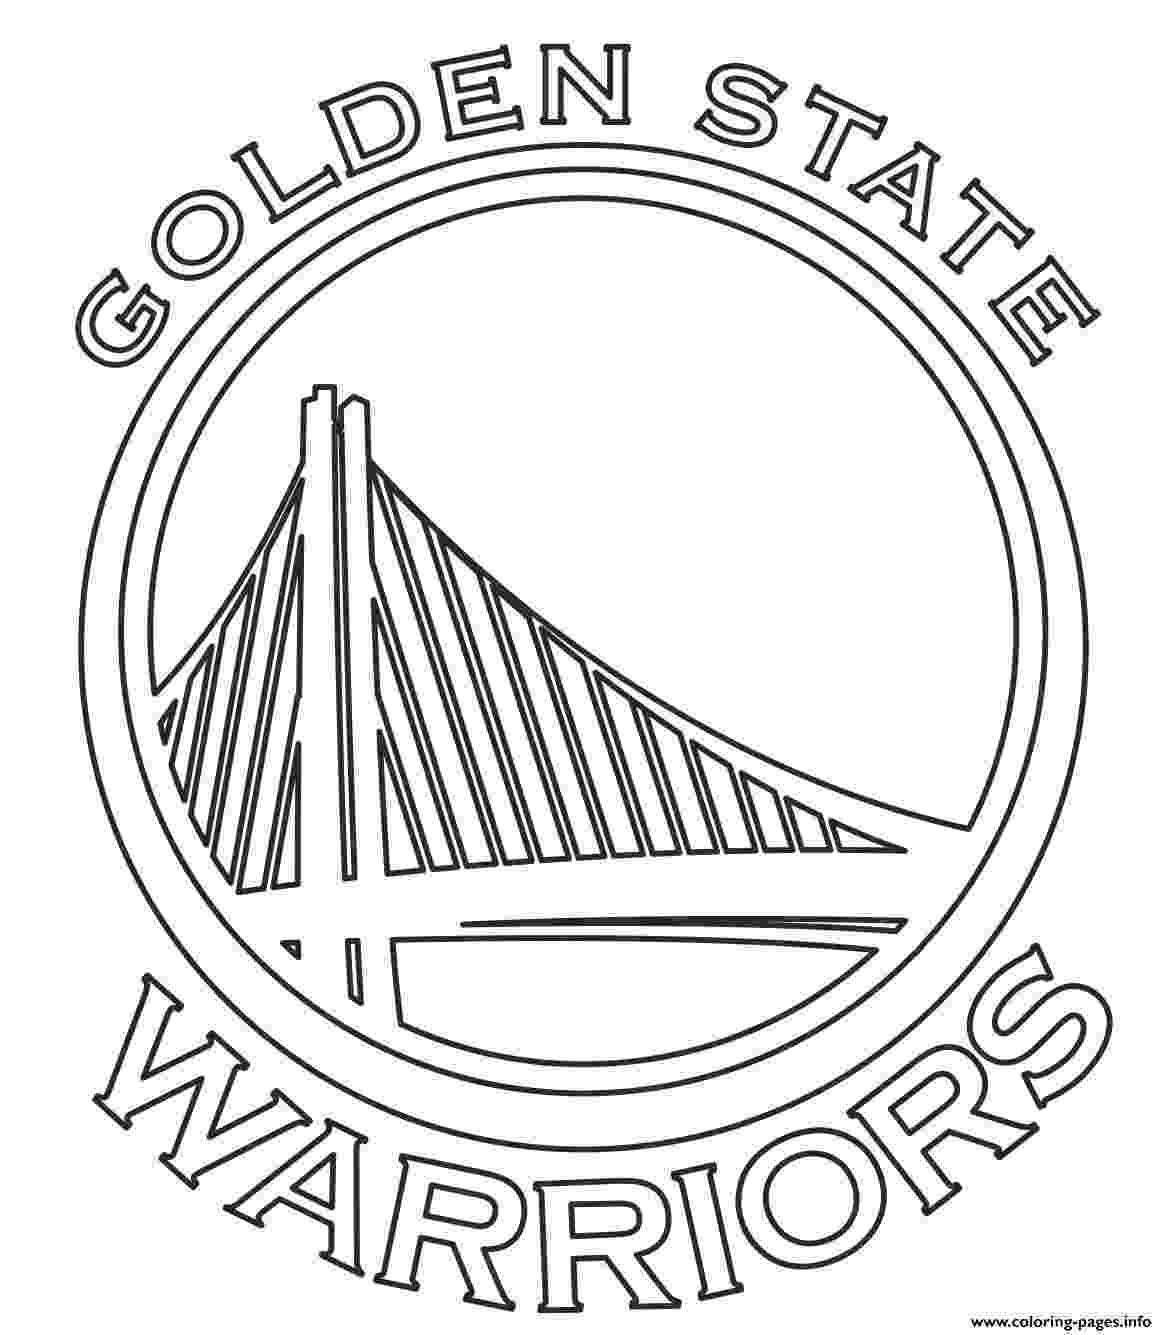 coloring pages warriors washington redskins logo coloring pages golden state pages coloring warriors